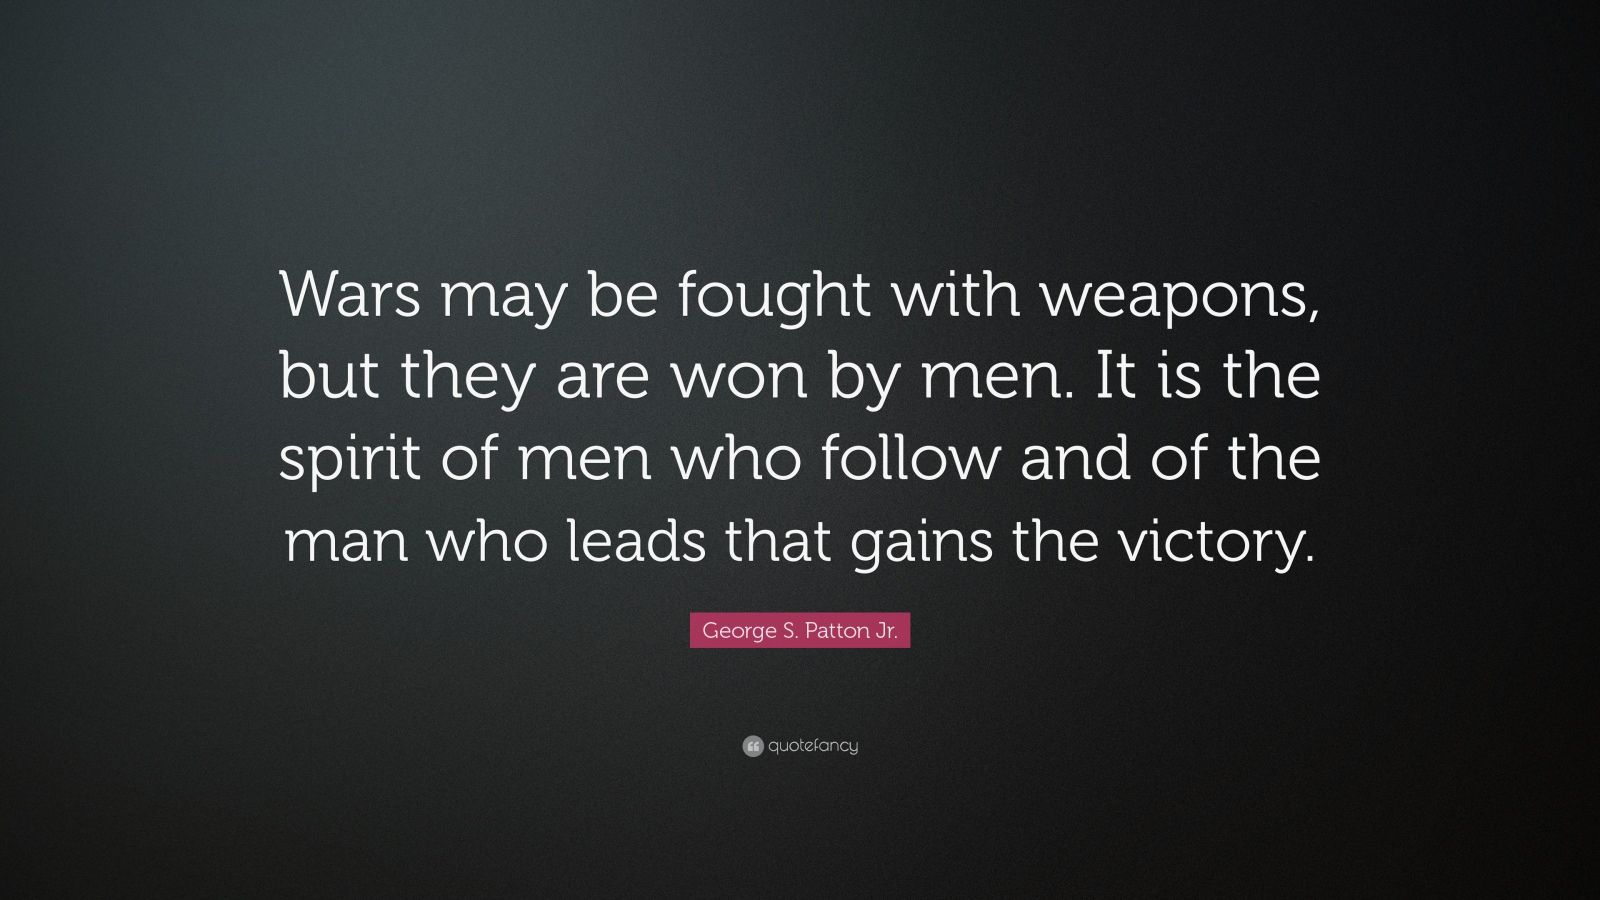 """George S. Patton Jr. Quote: """"Wars may be fought with weapons, but they are won by men. It is the spirit of men who follow and of the man who leads that gains the victory."""""""